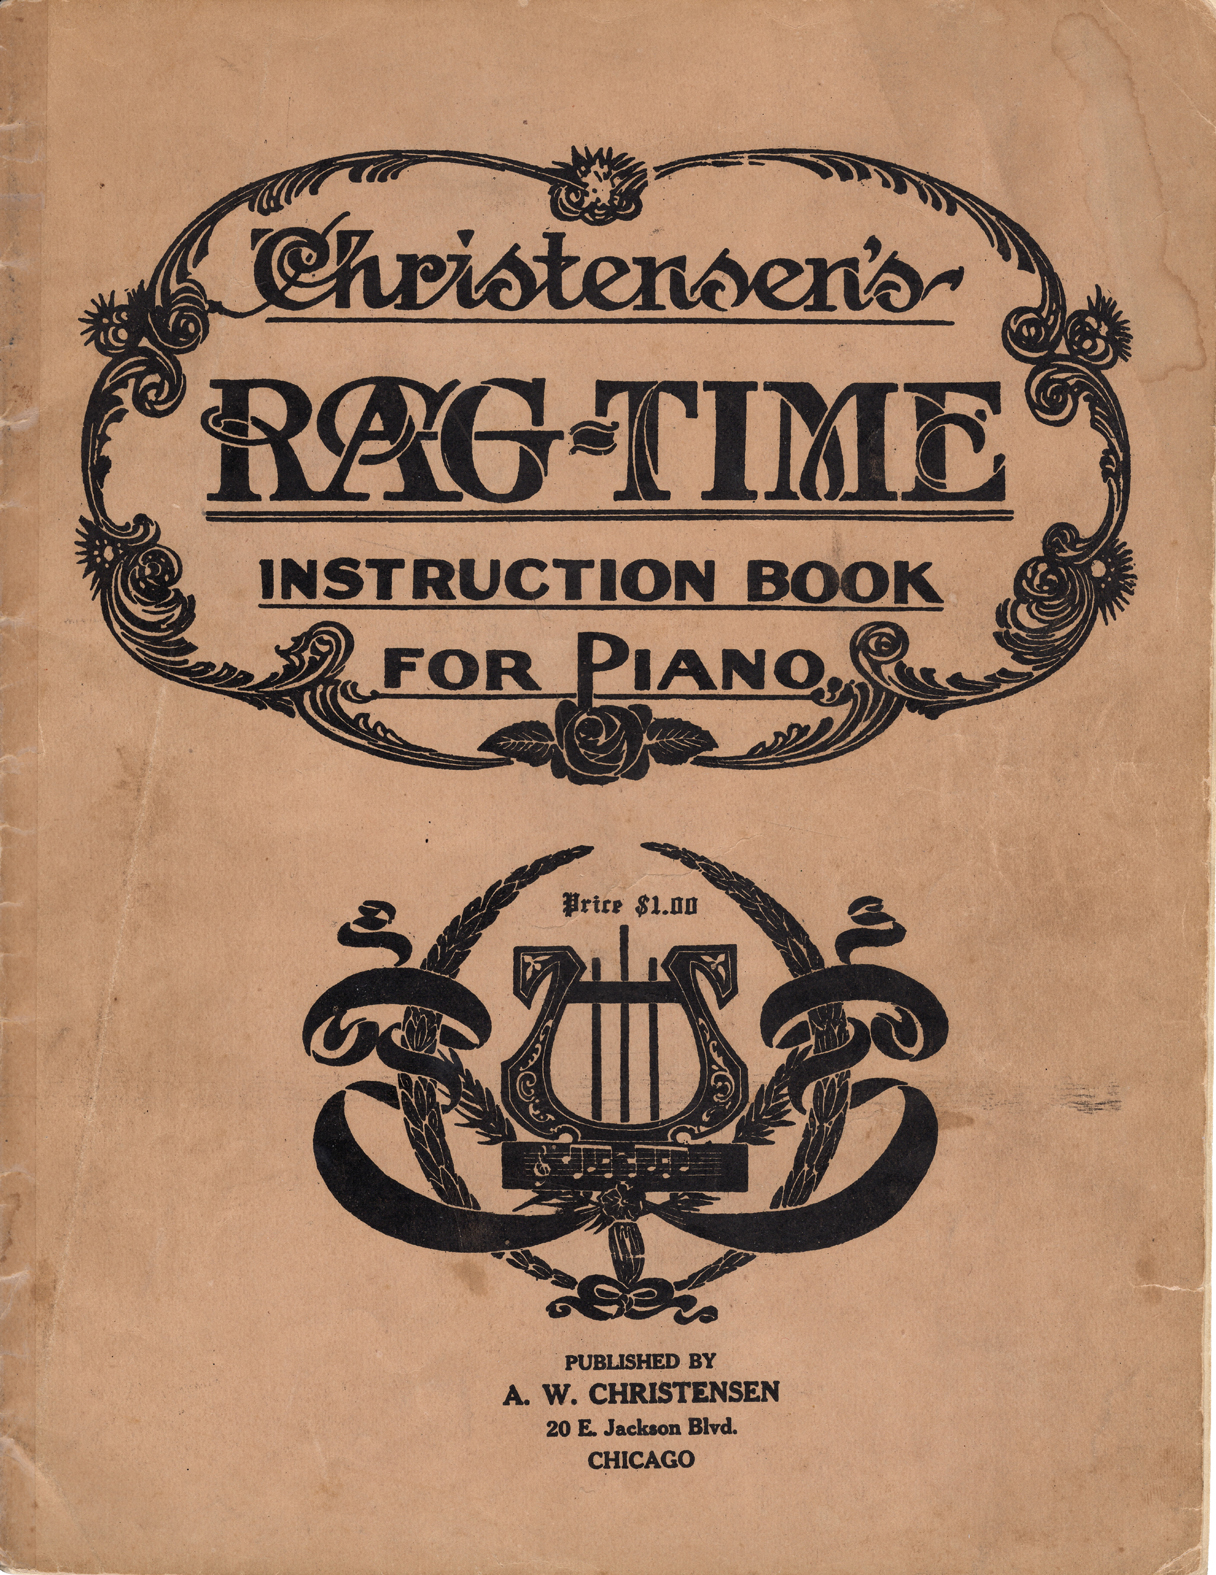 Christensen's Rag-Time Instruction Book for Piano